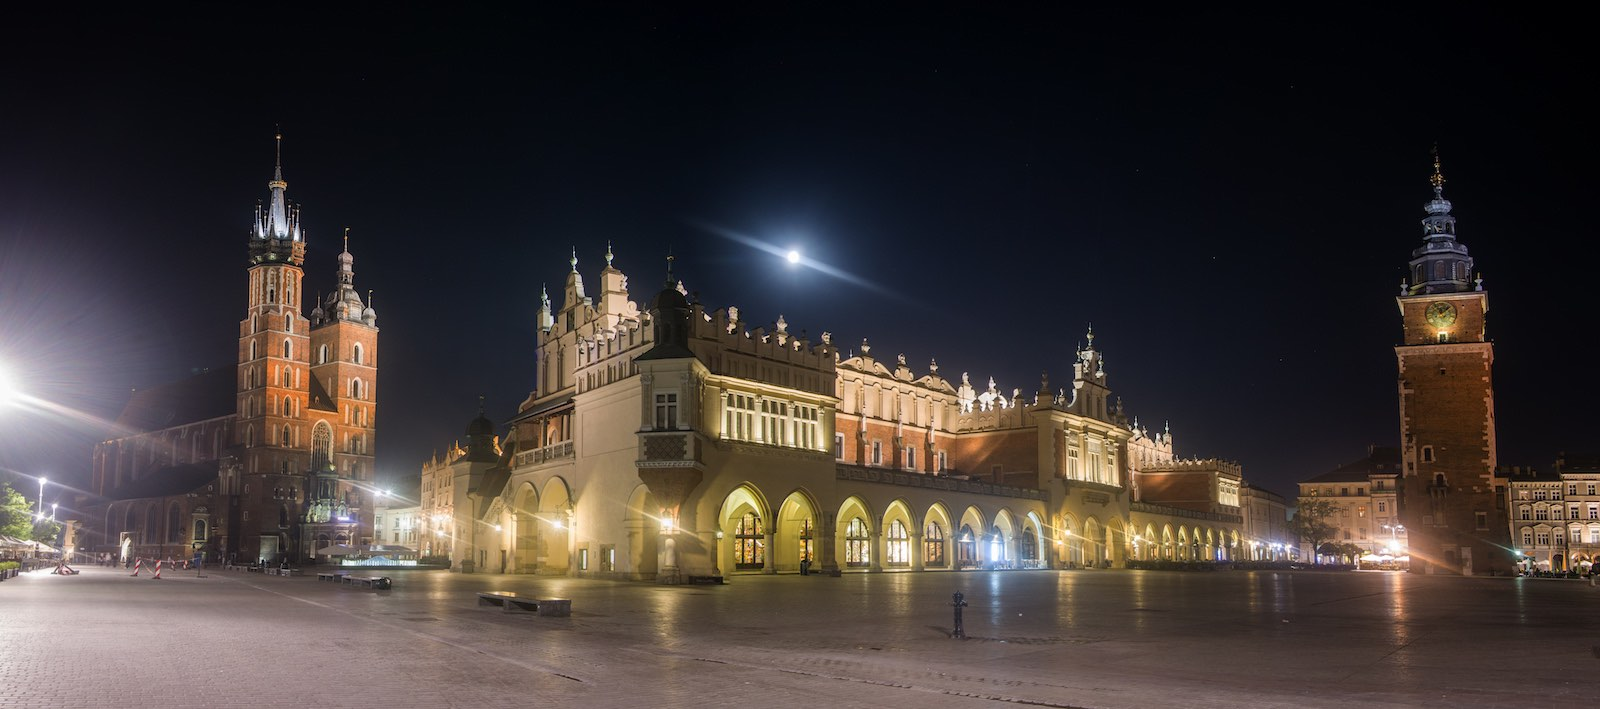 Krakow Old Town Views And Facts